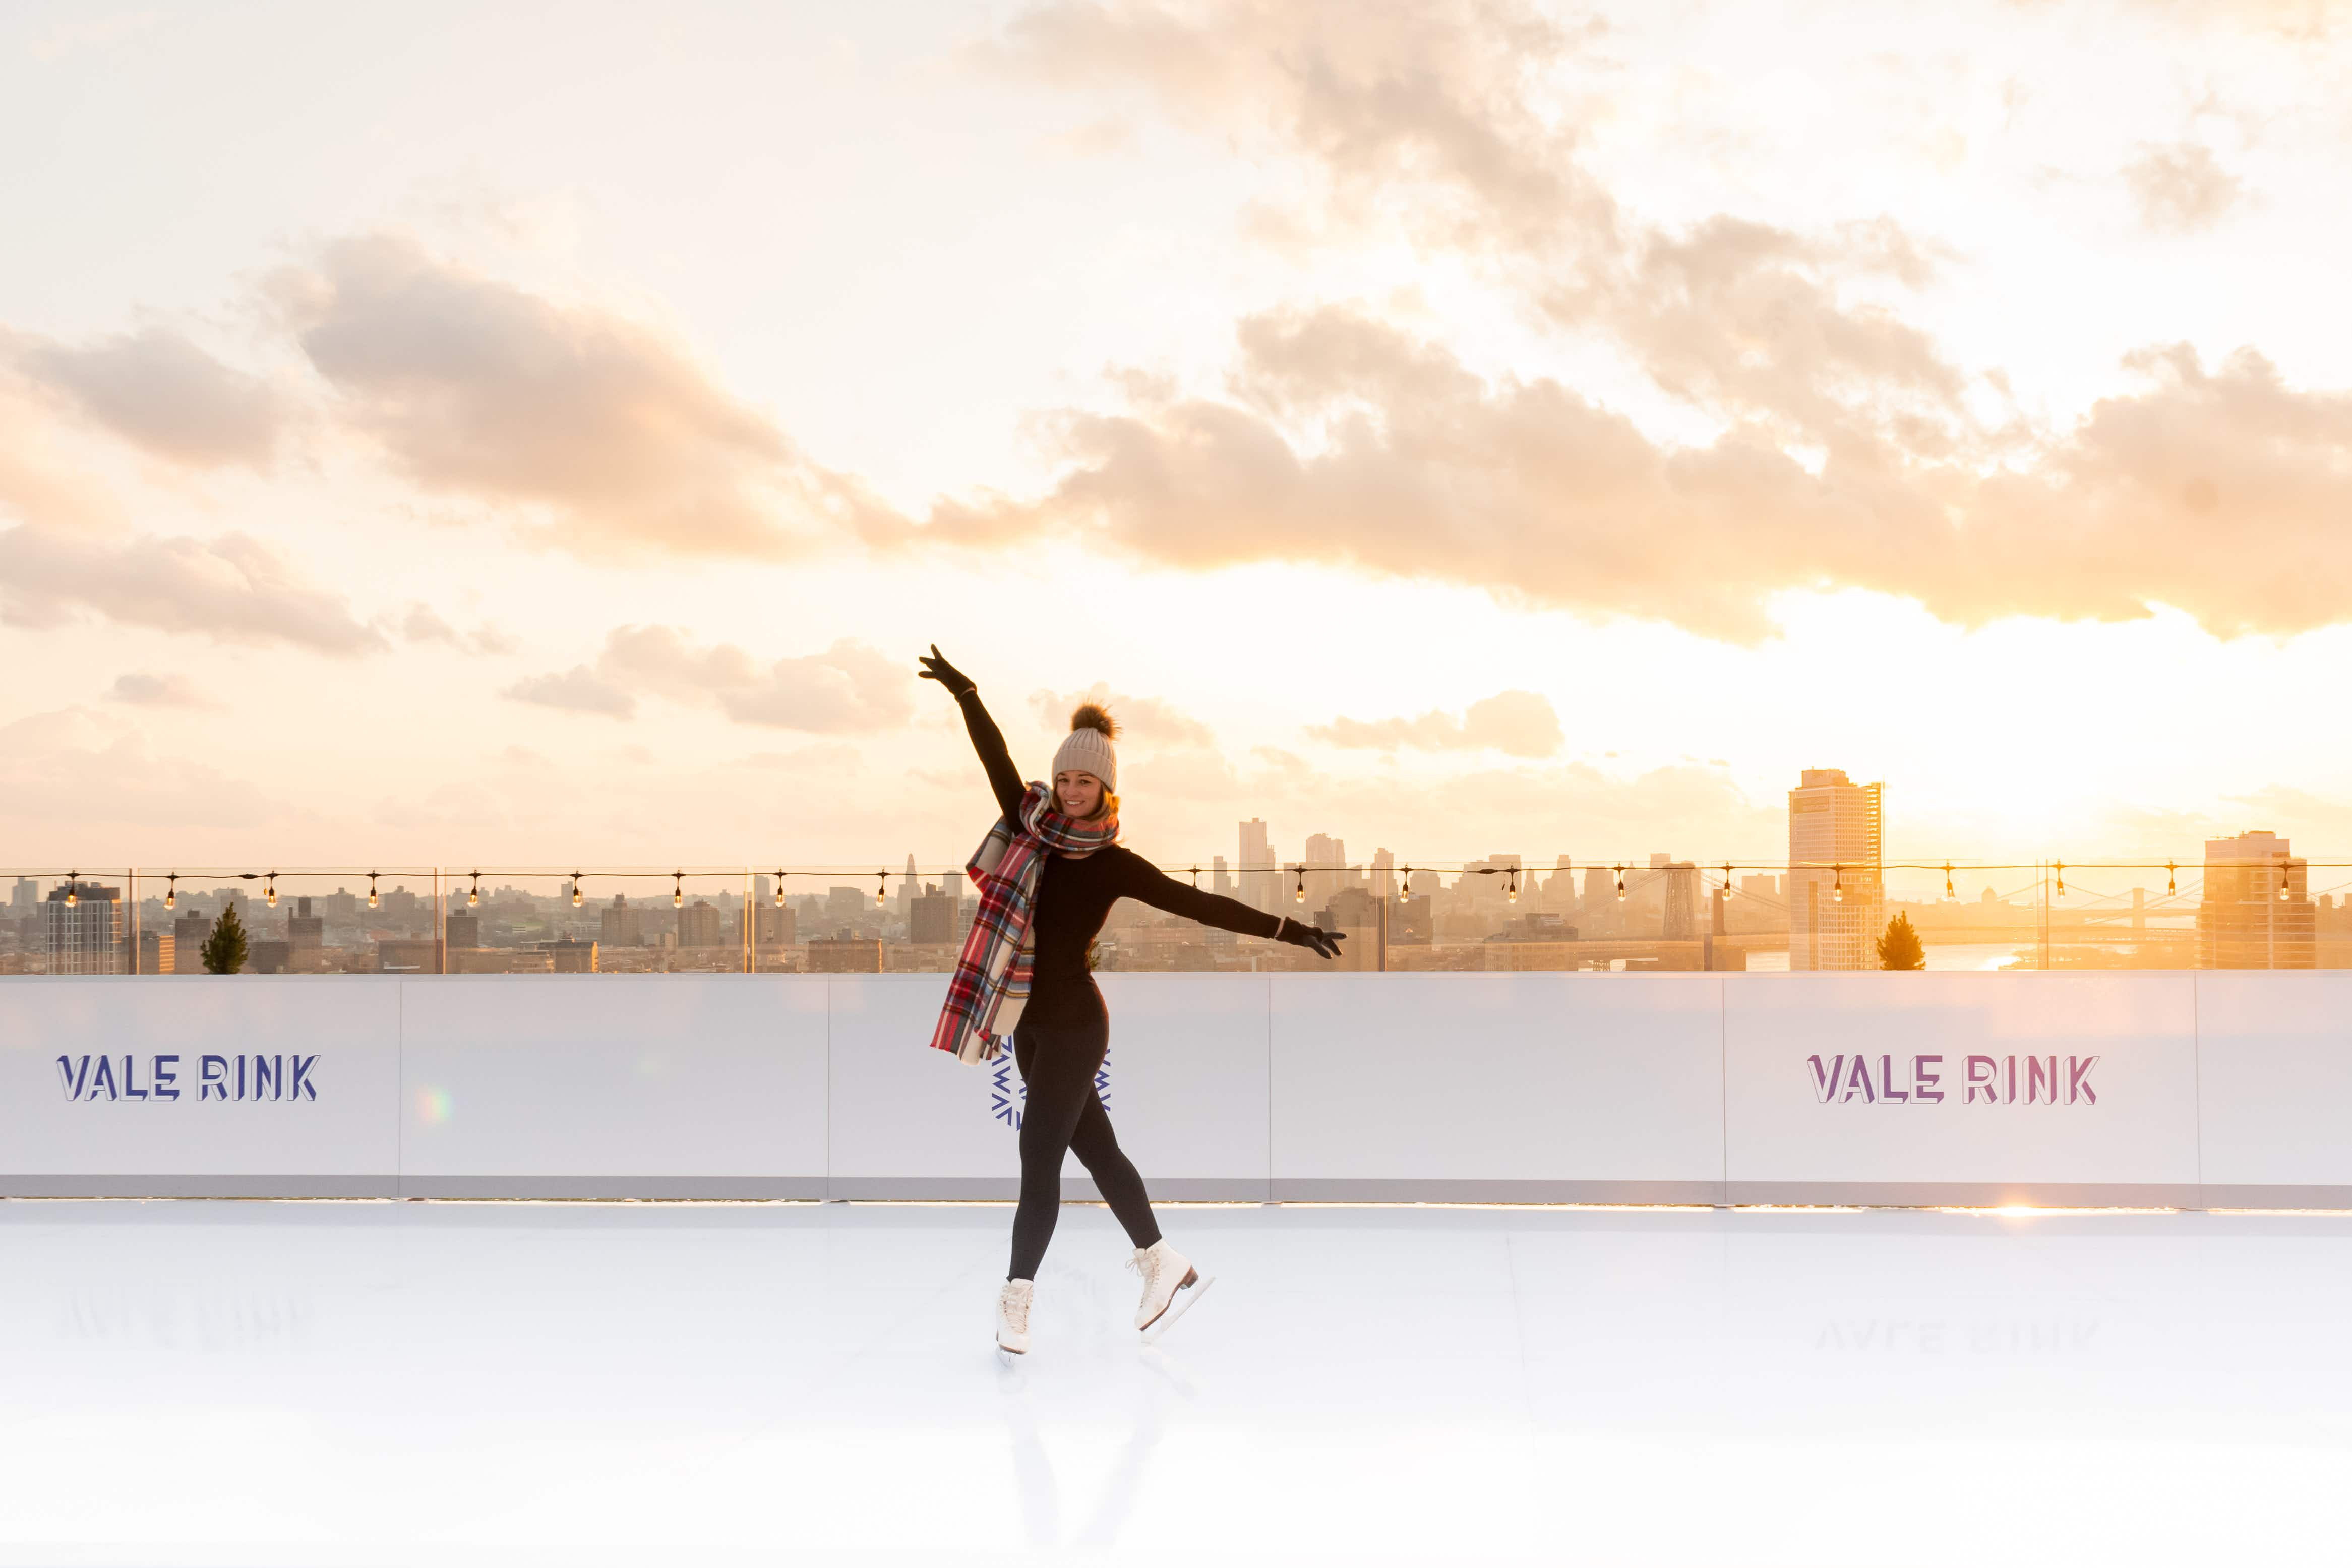 Skate your way across the New York skyline on the roof of this hotel